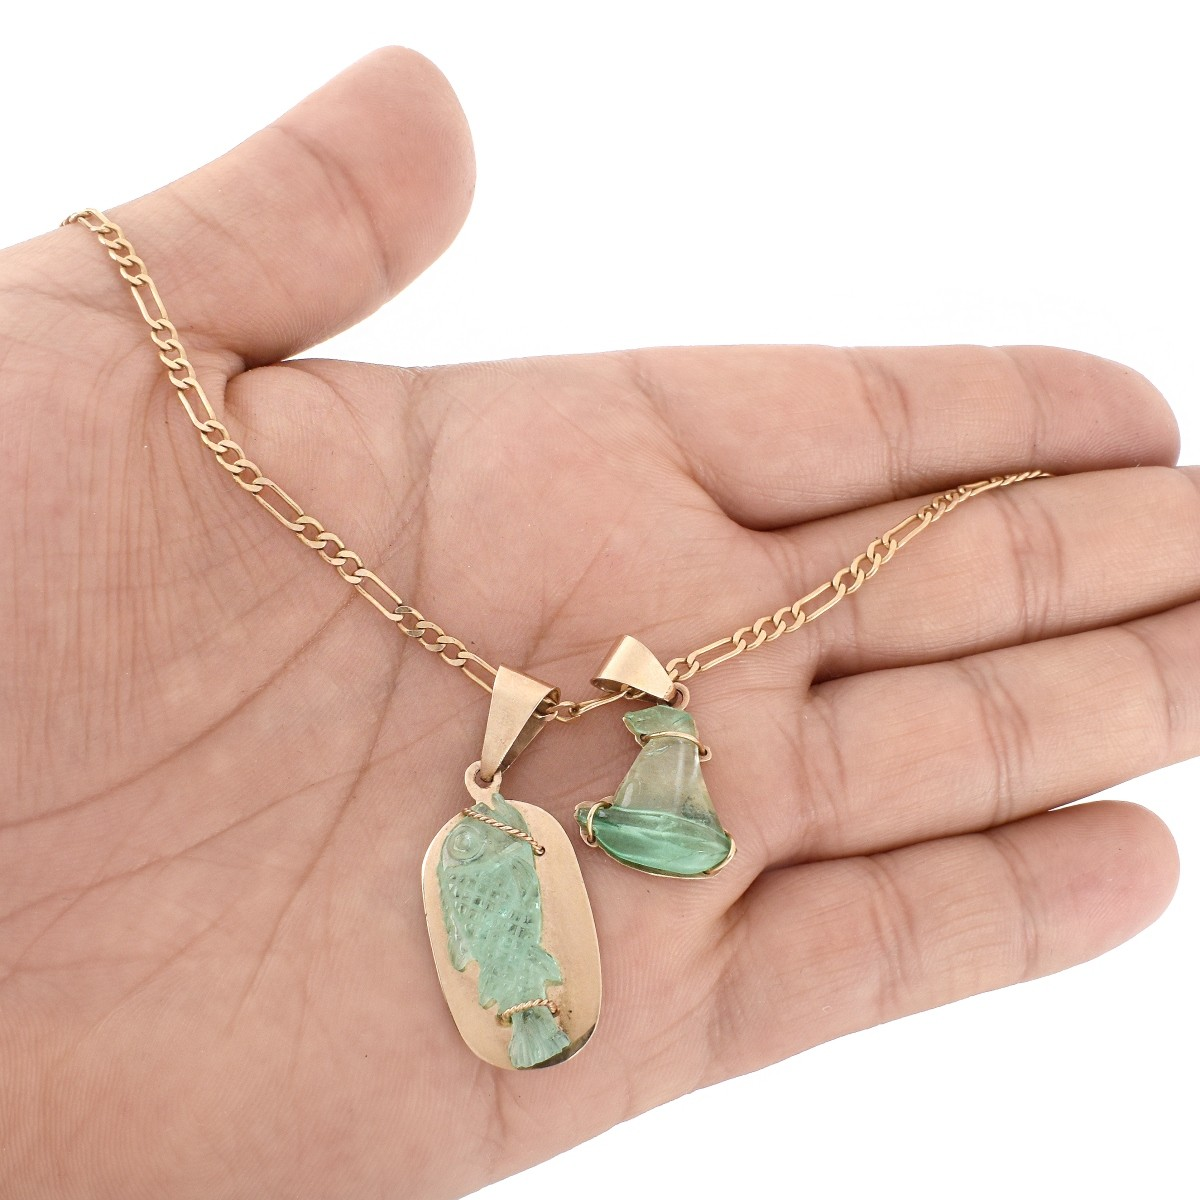 Italian Emerald and 14K Pendant Necklace